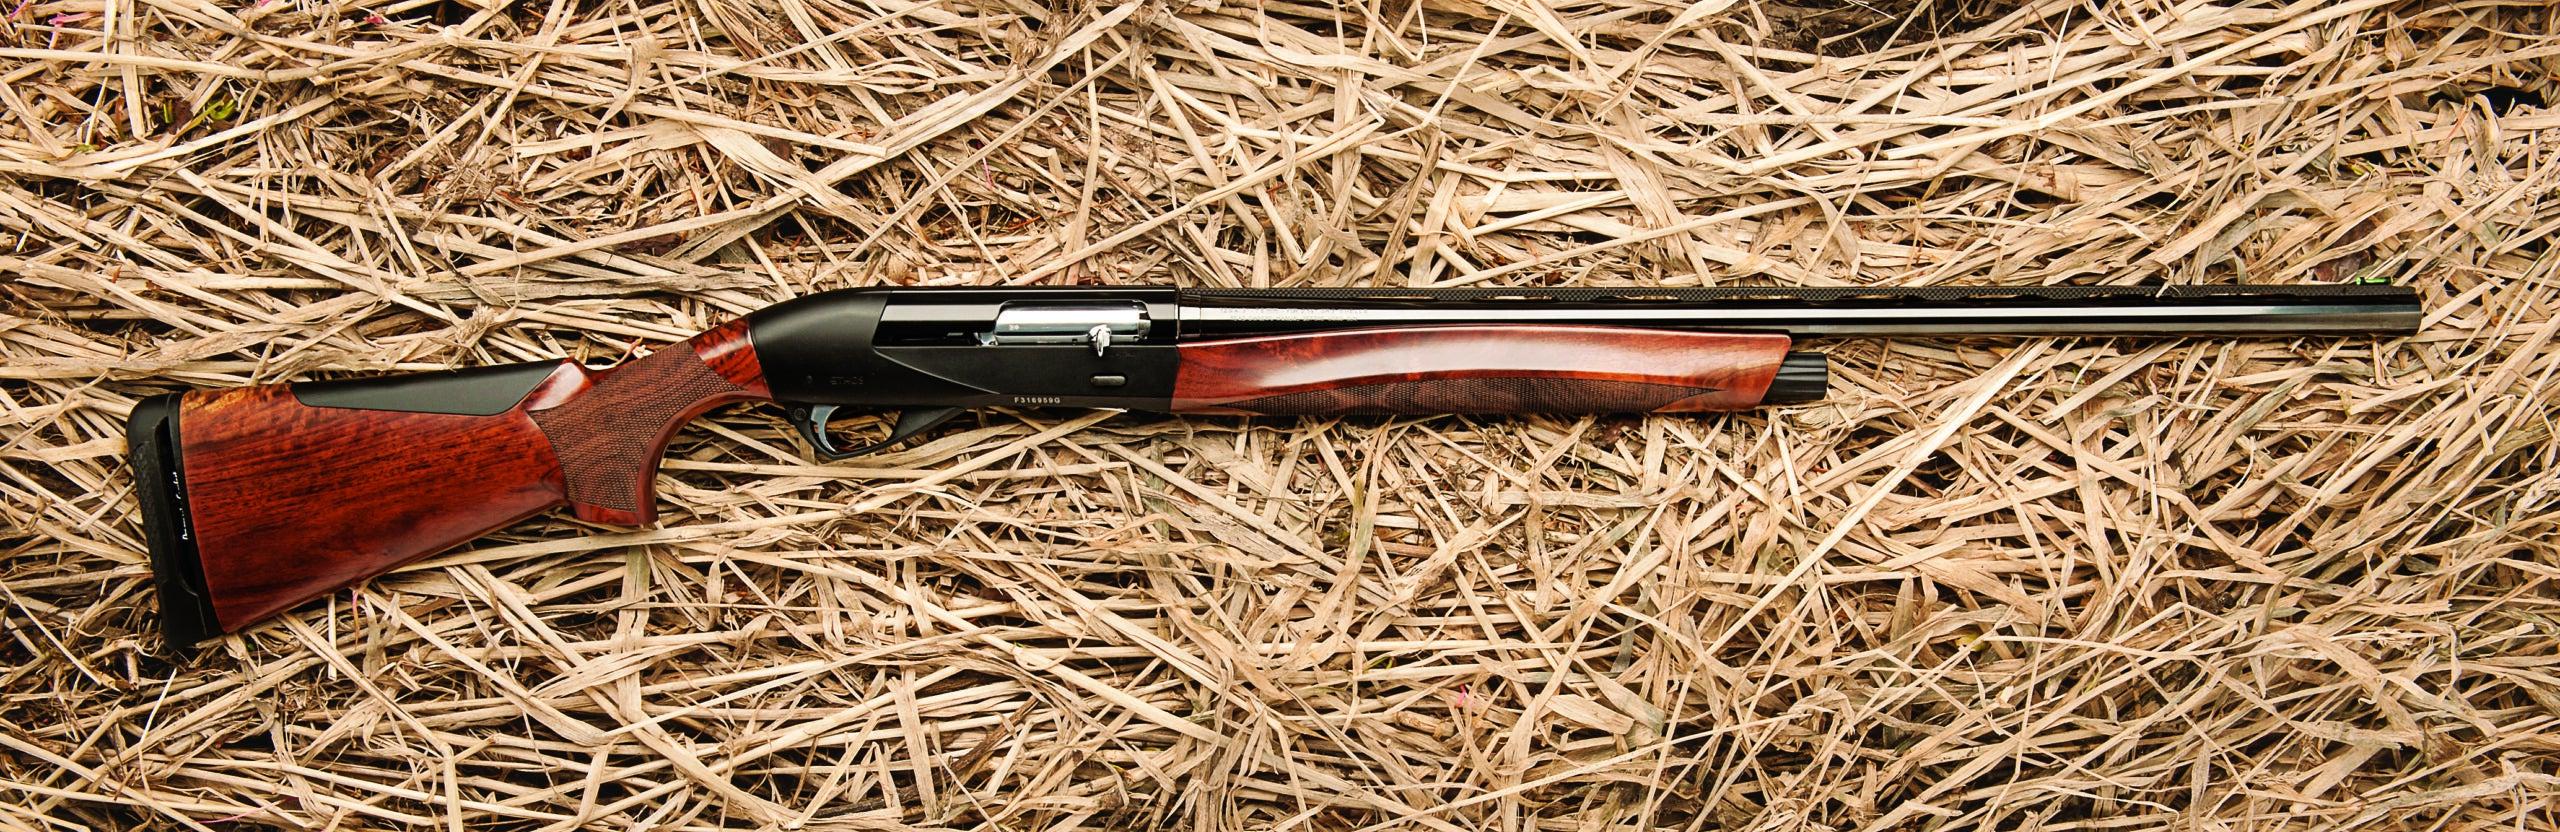 Shotgun Review: The Benelli Ethos